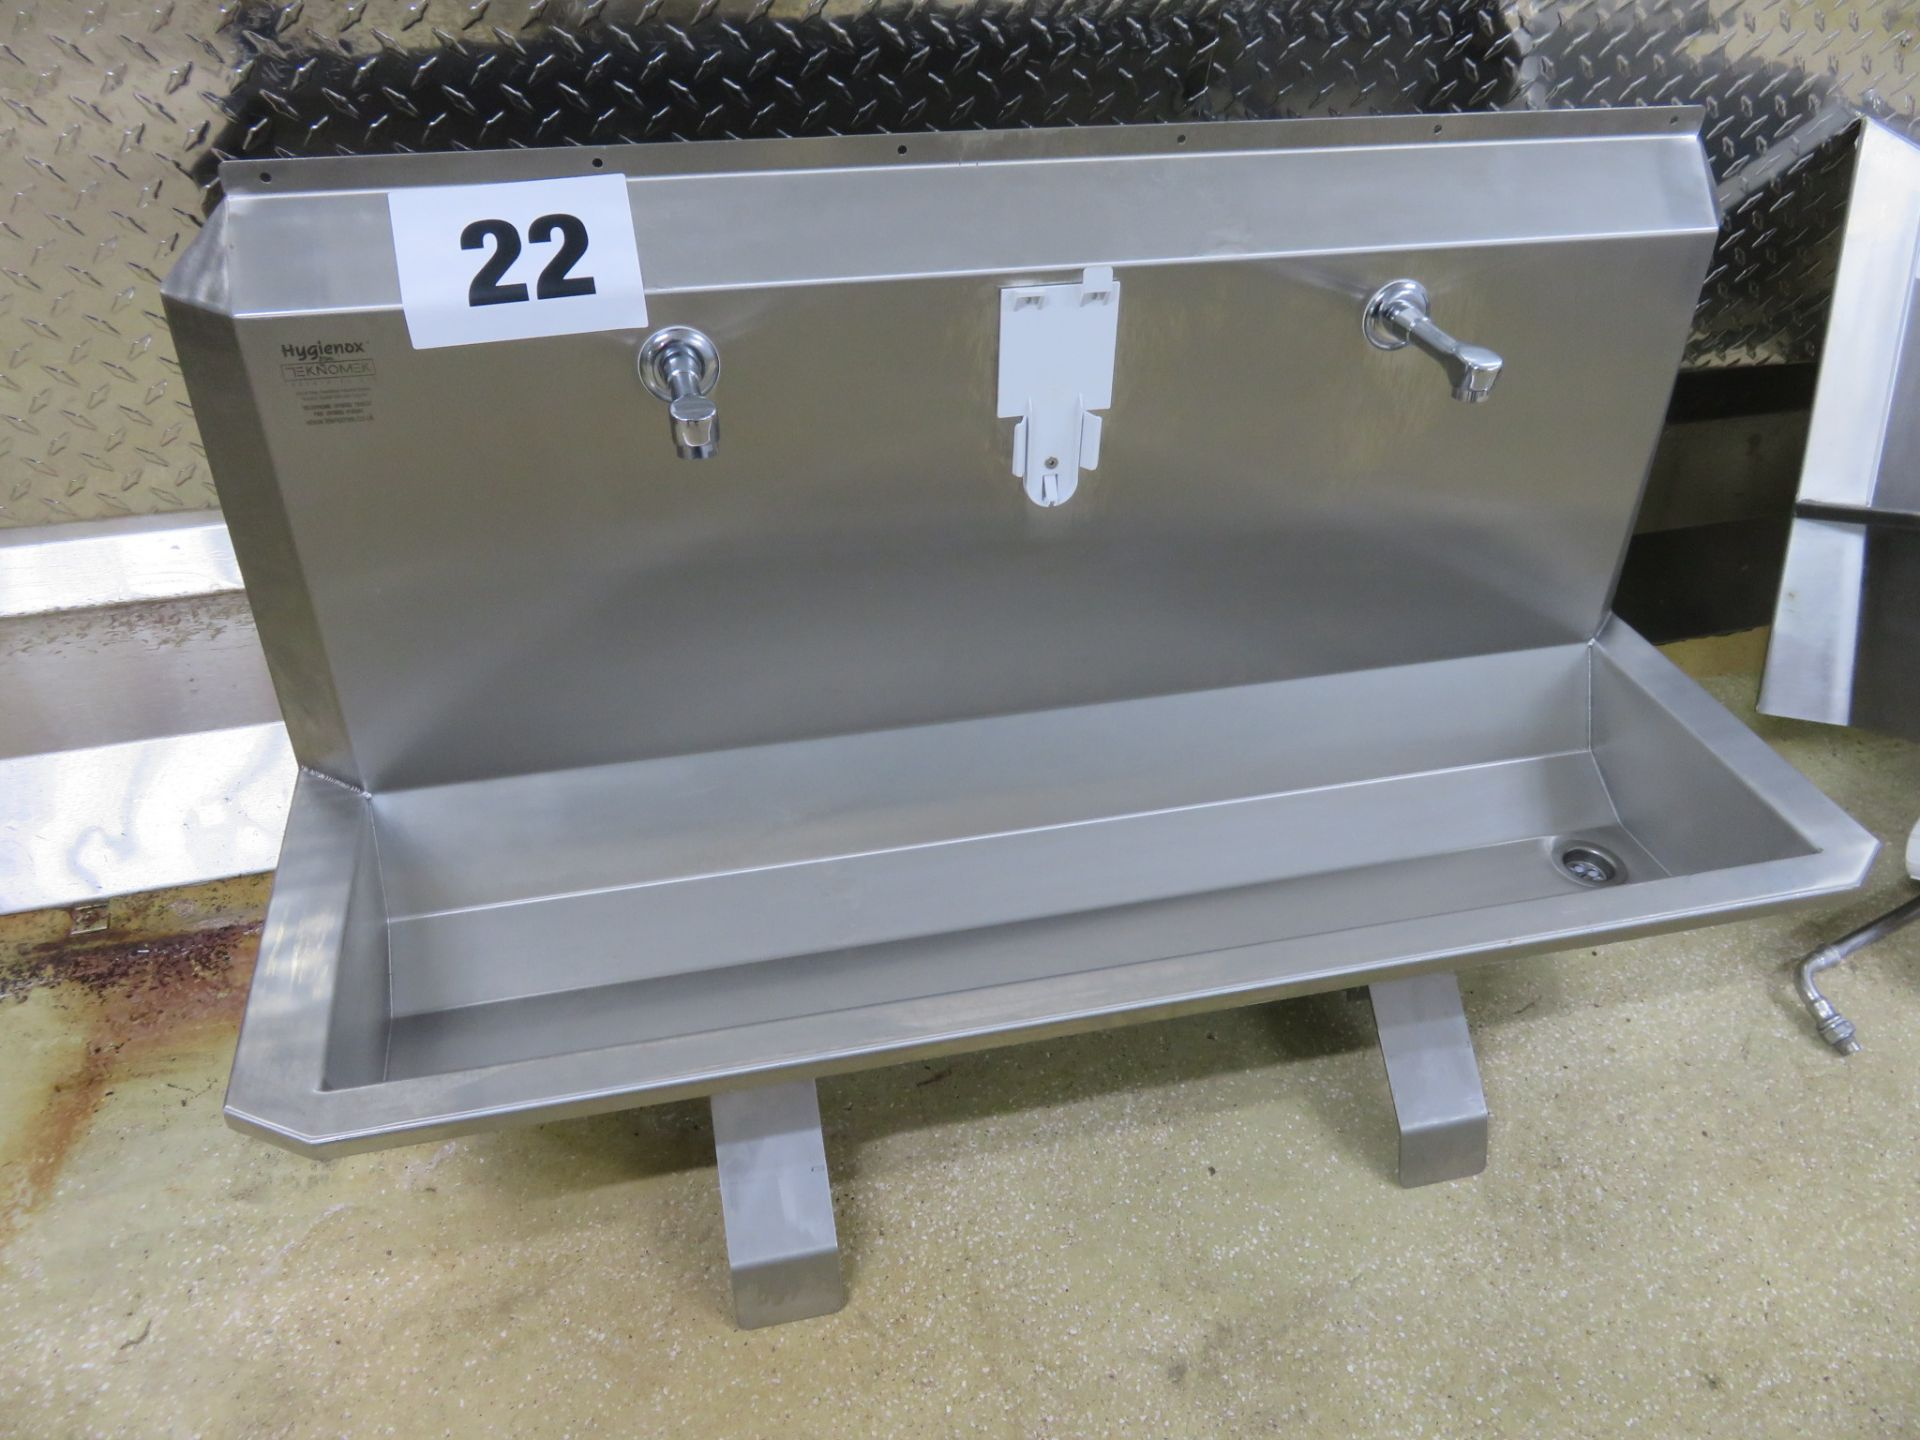 Lot 22 - Teknomek S/s Sink 2 station, knee operated. Lift out £15